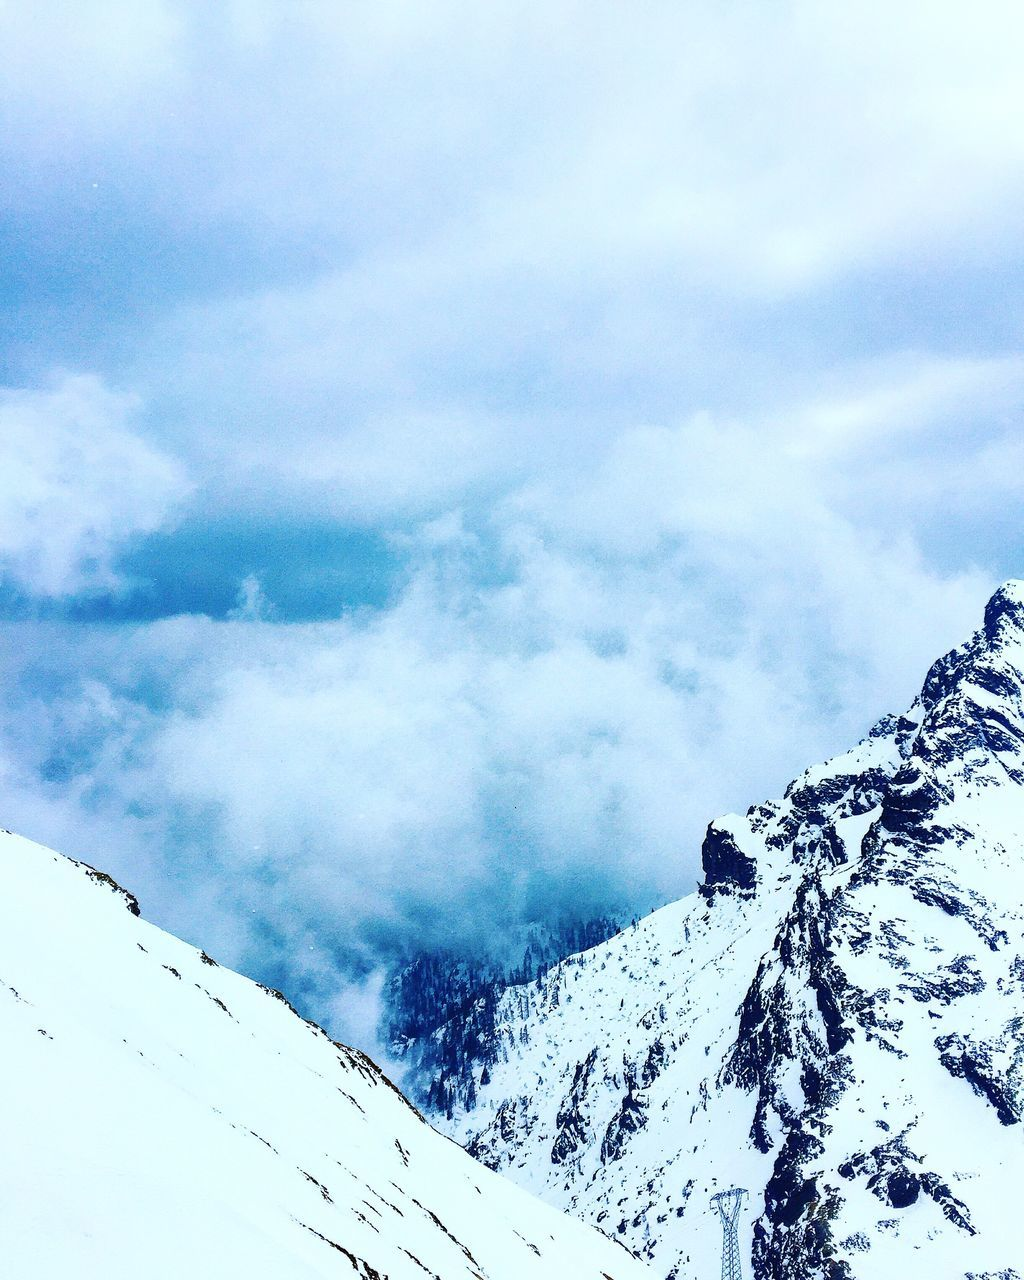 LOW ANGLE VIEW OF CLOUDY SKY And Snow Covered Mountains